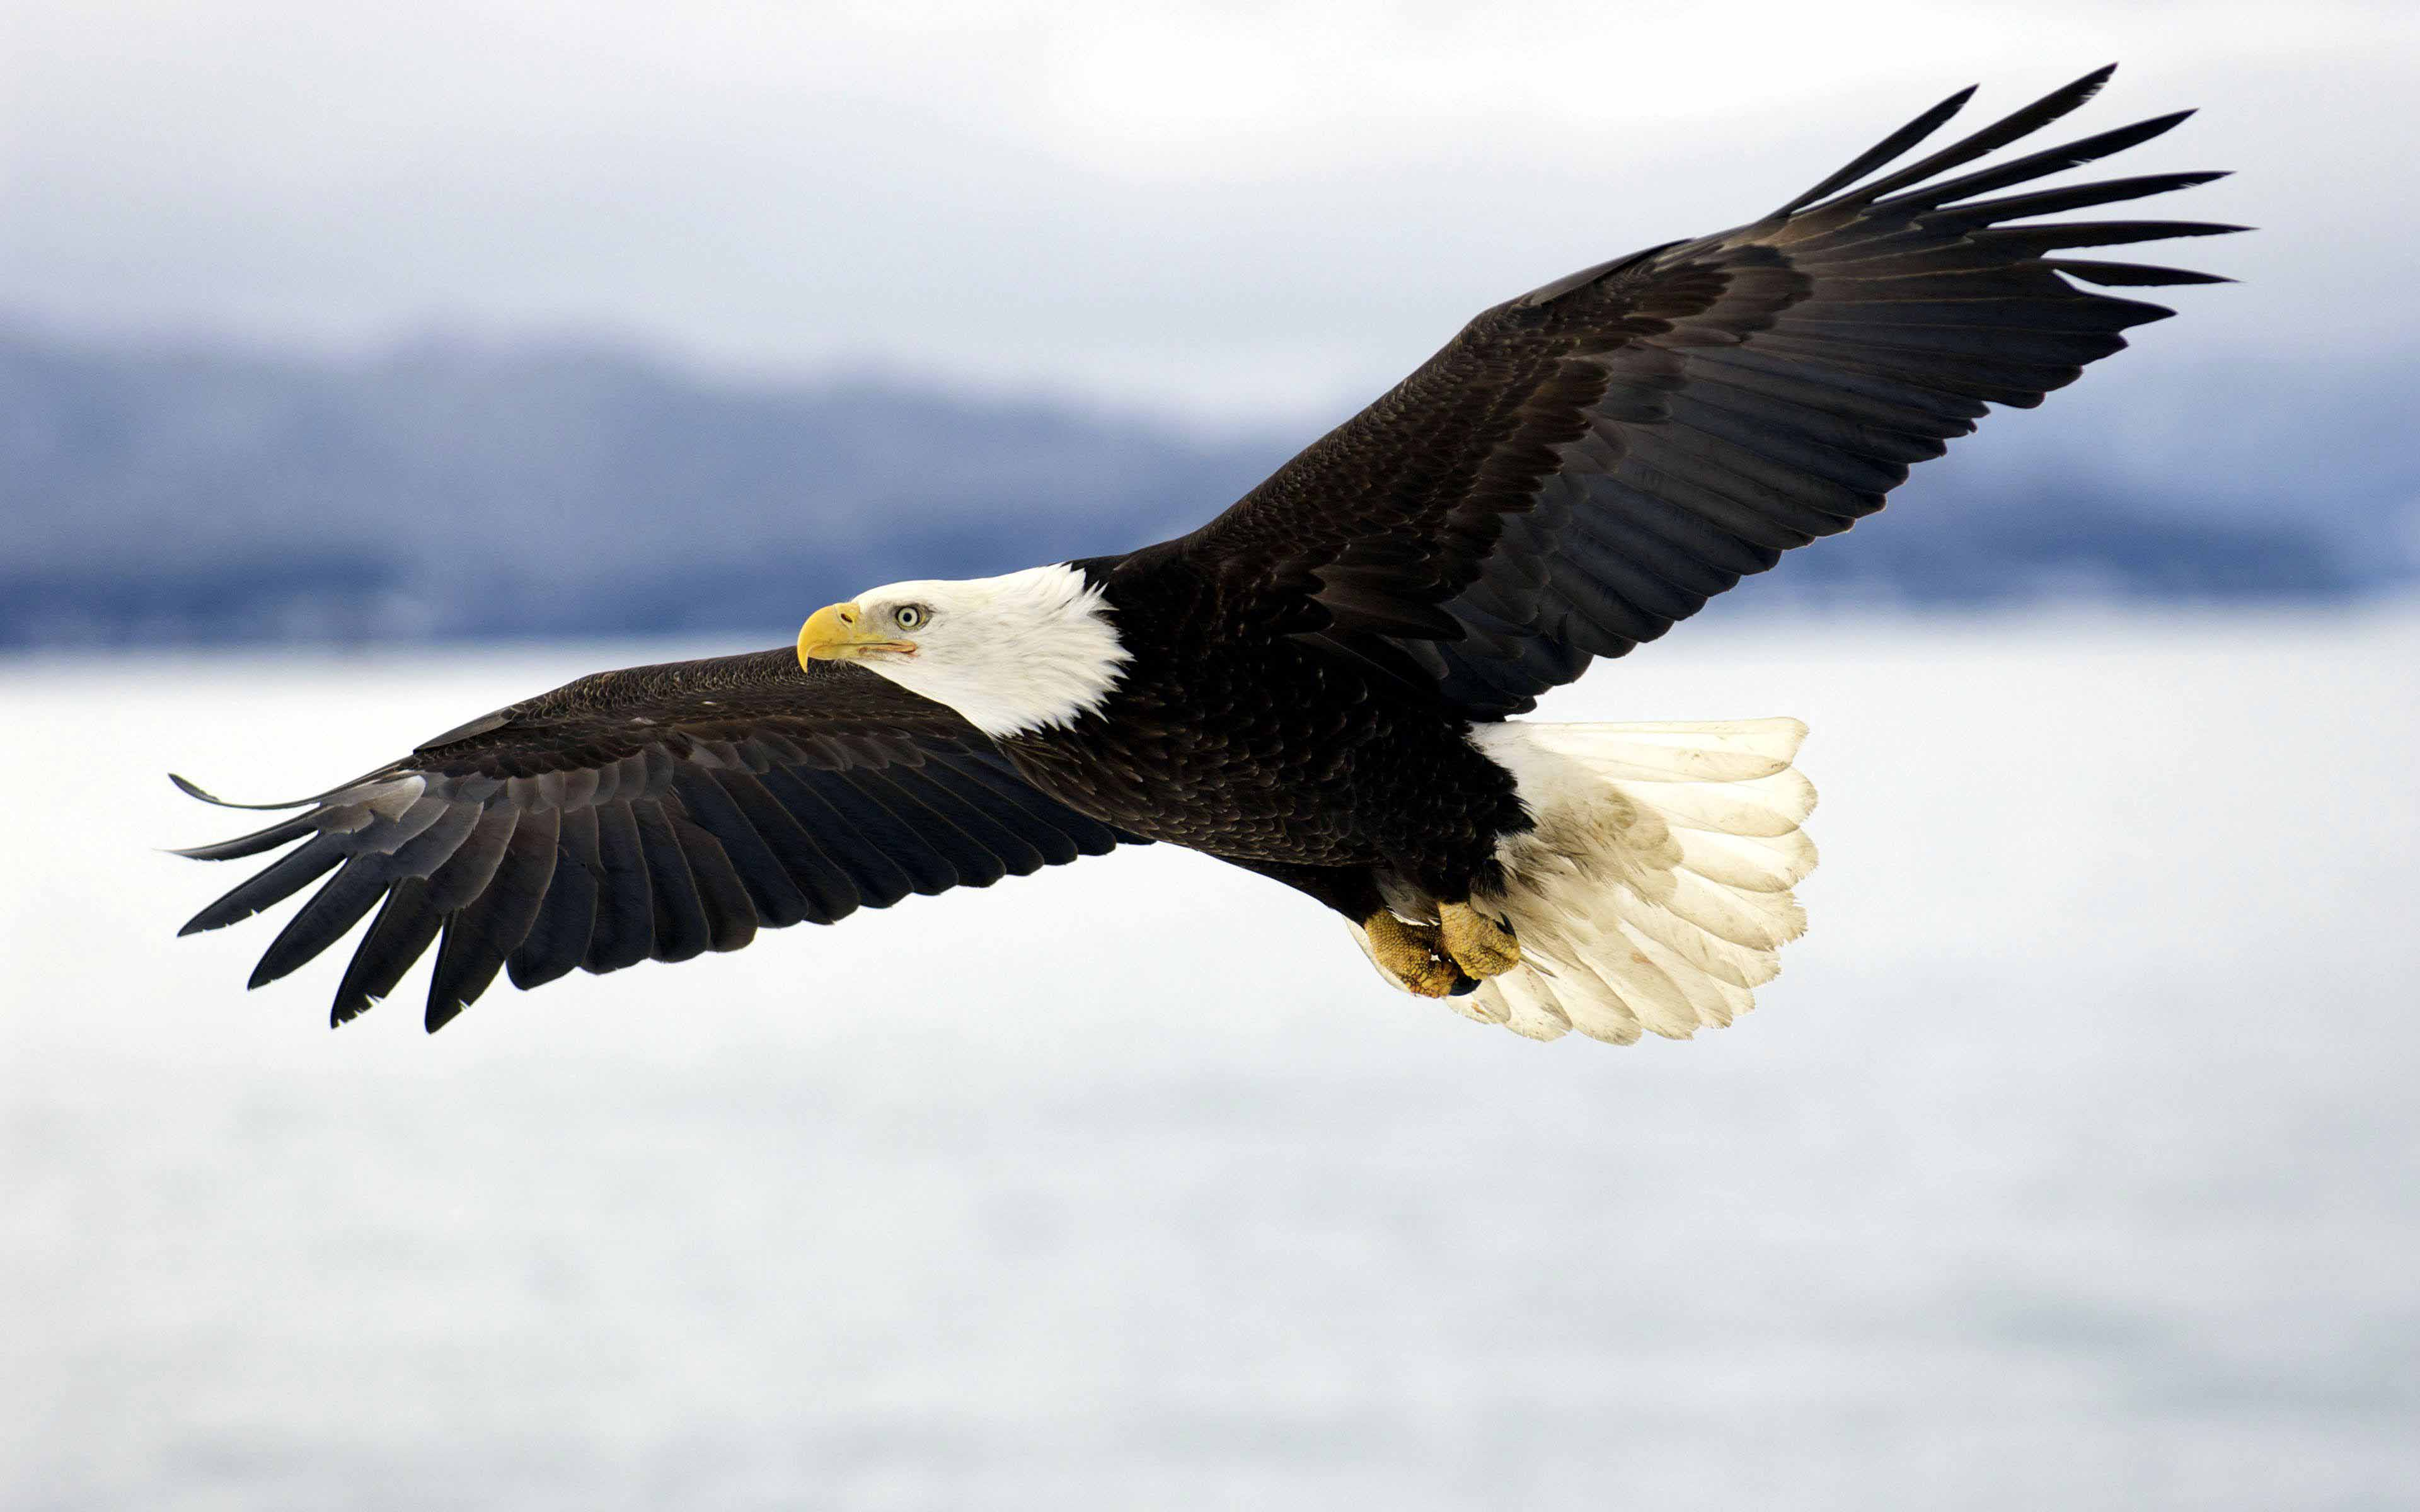 American Eagle Wallpapers HD 5A1Q1IB   4USkY 3840x2400